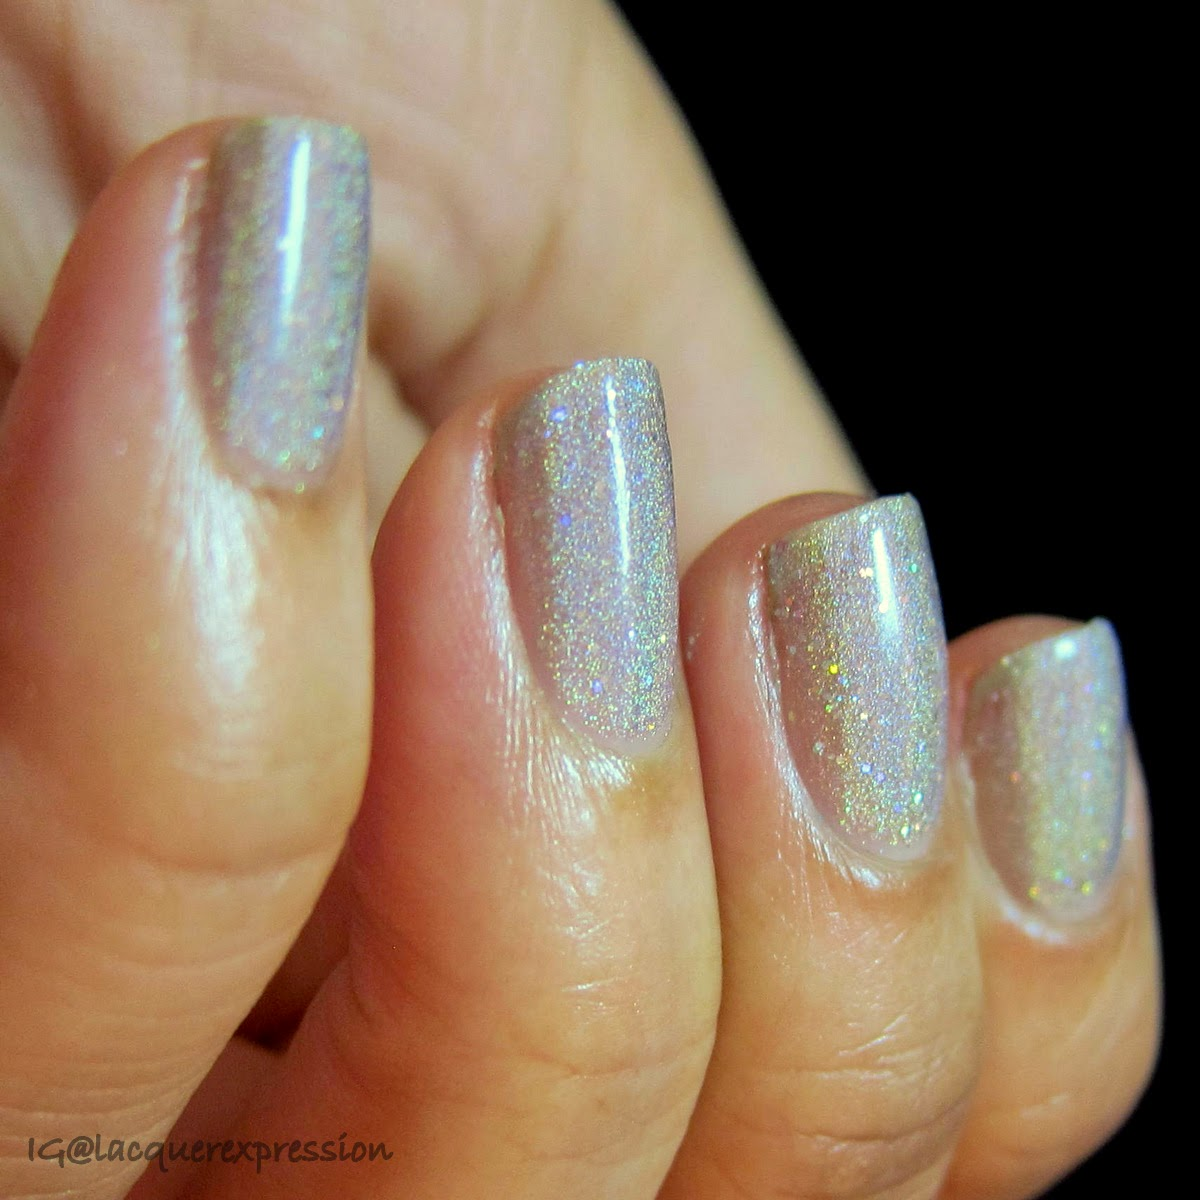 swatch of mirrorball nail polish by orly